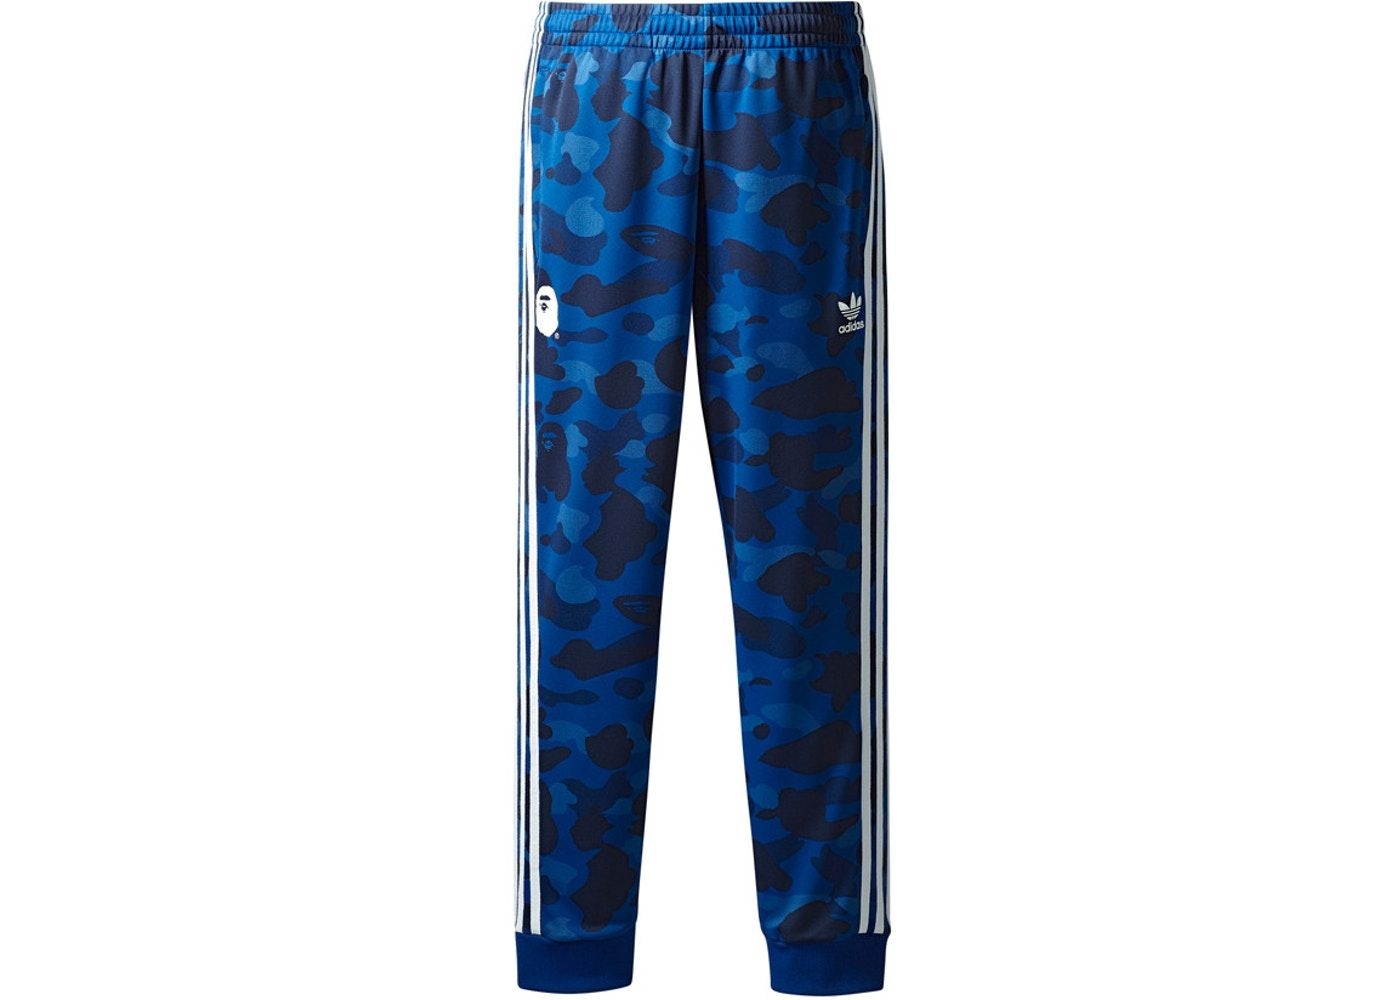 6522b072 Bape x adidas adicolor Track Pants Blue Buy and sell authentic BAPE  streetwear on StockX including